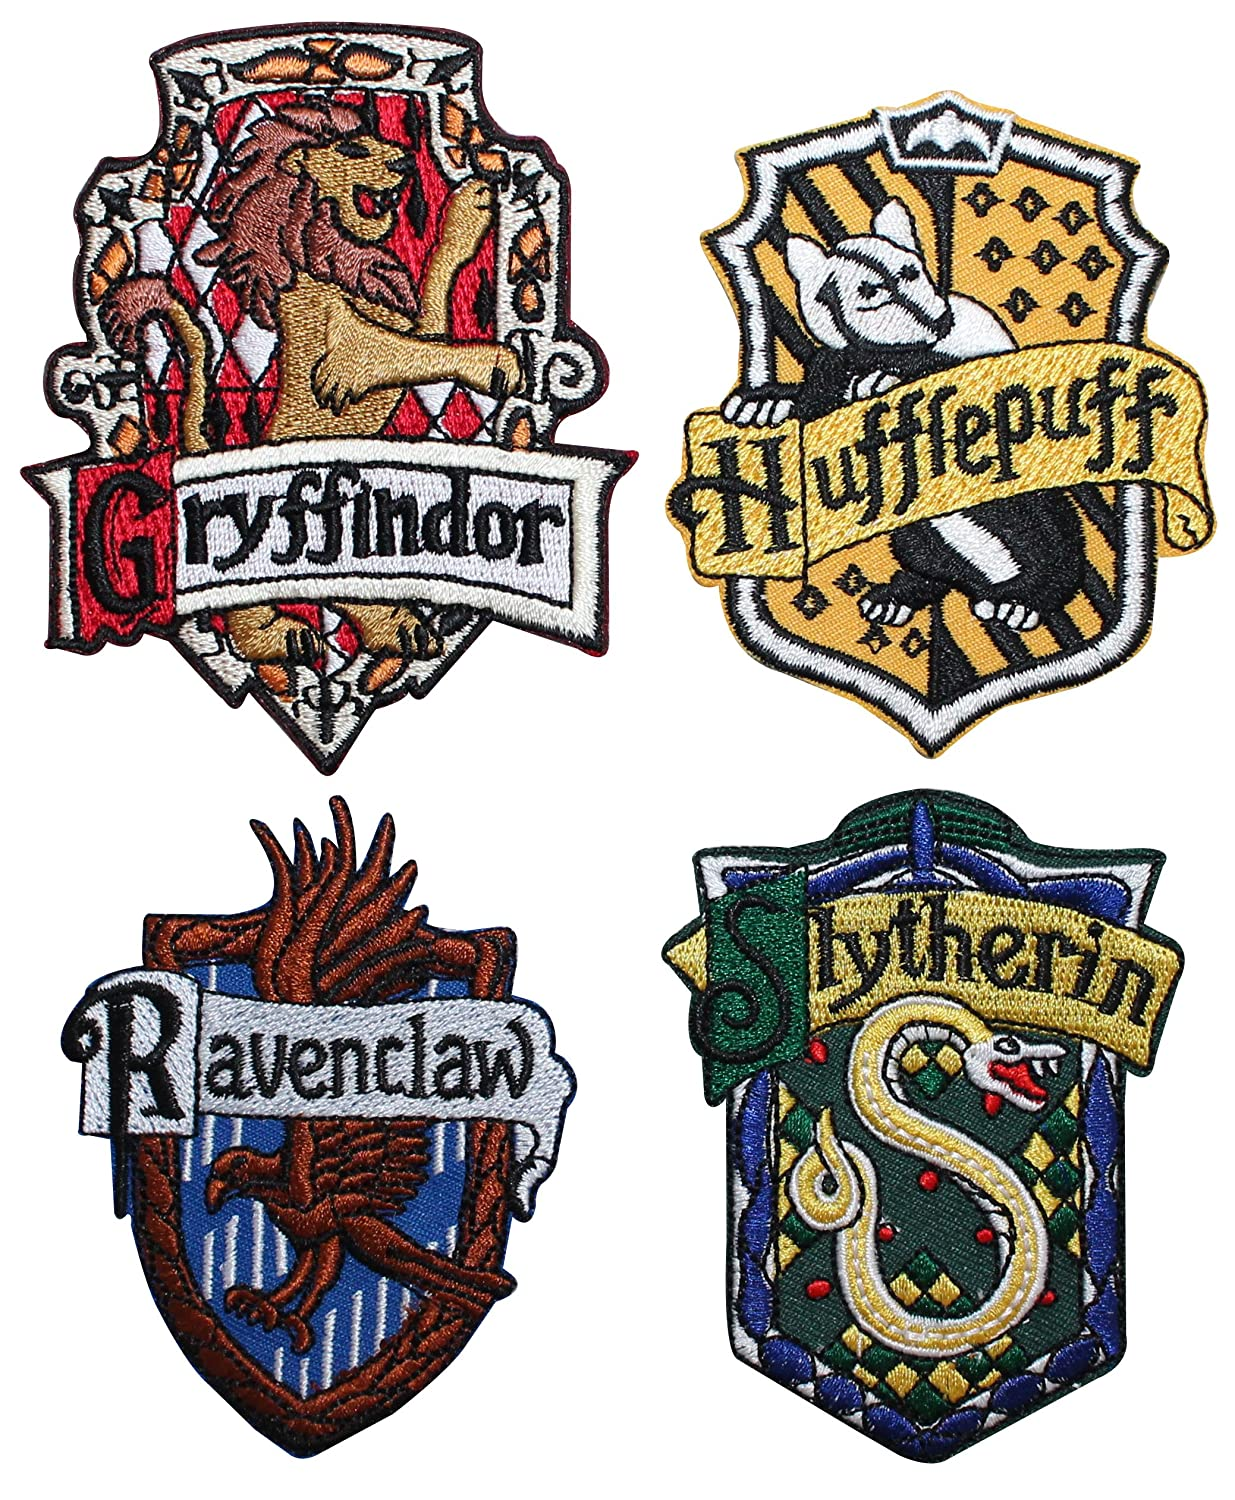 4 hogwarts houses 28 images hogwarts houses images the